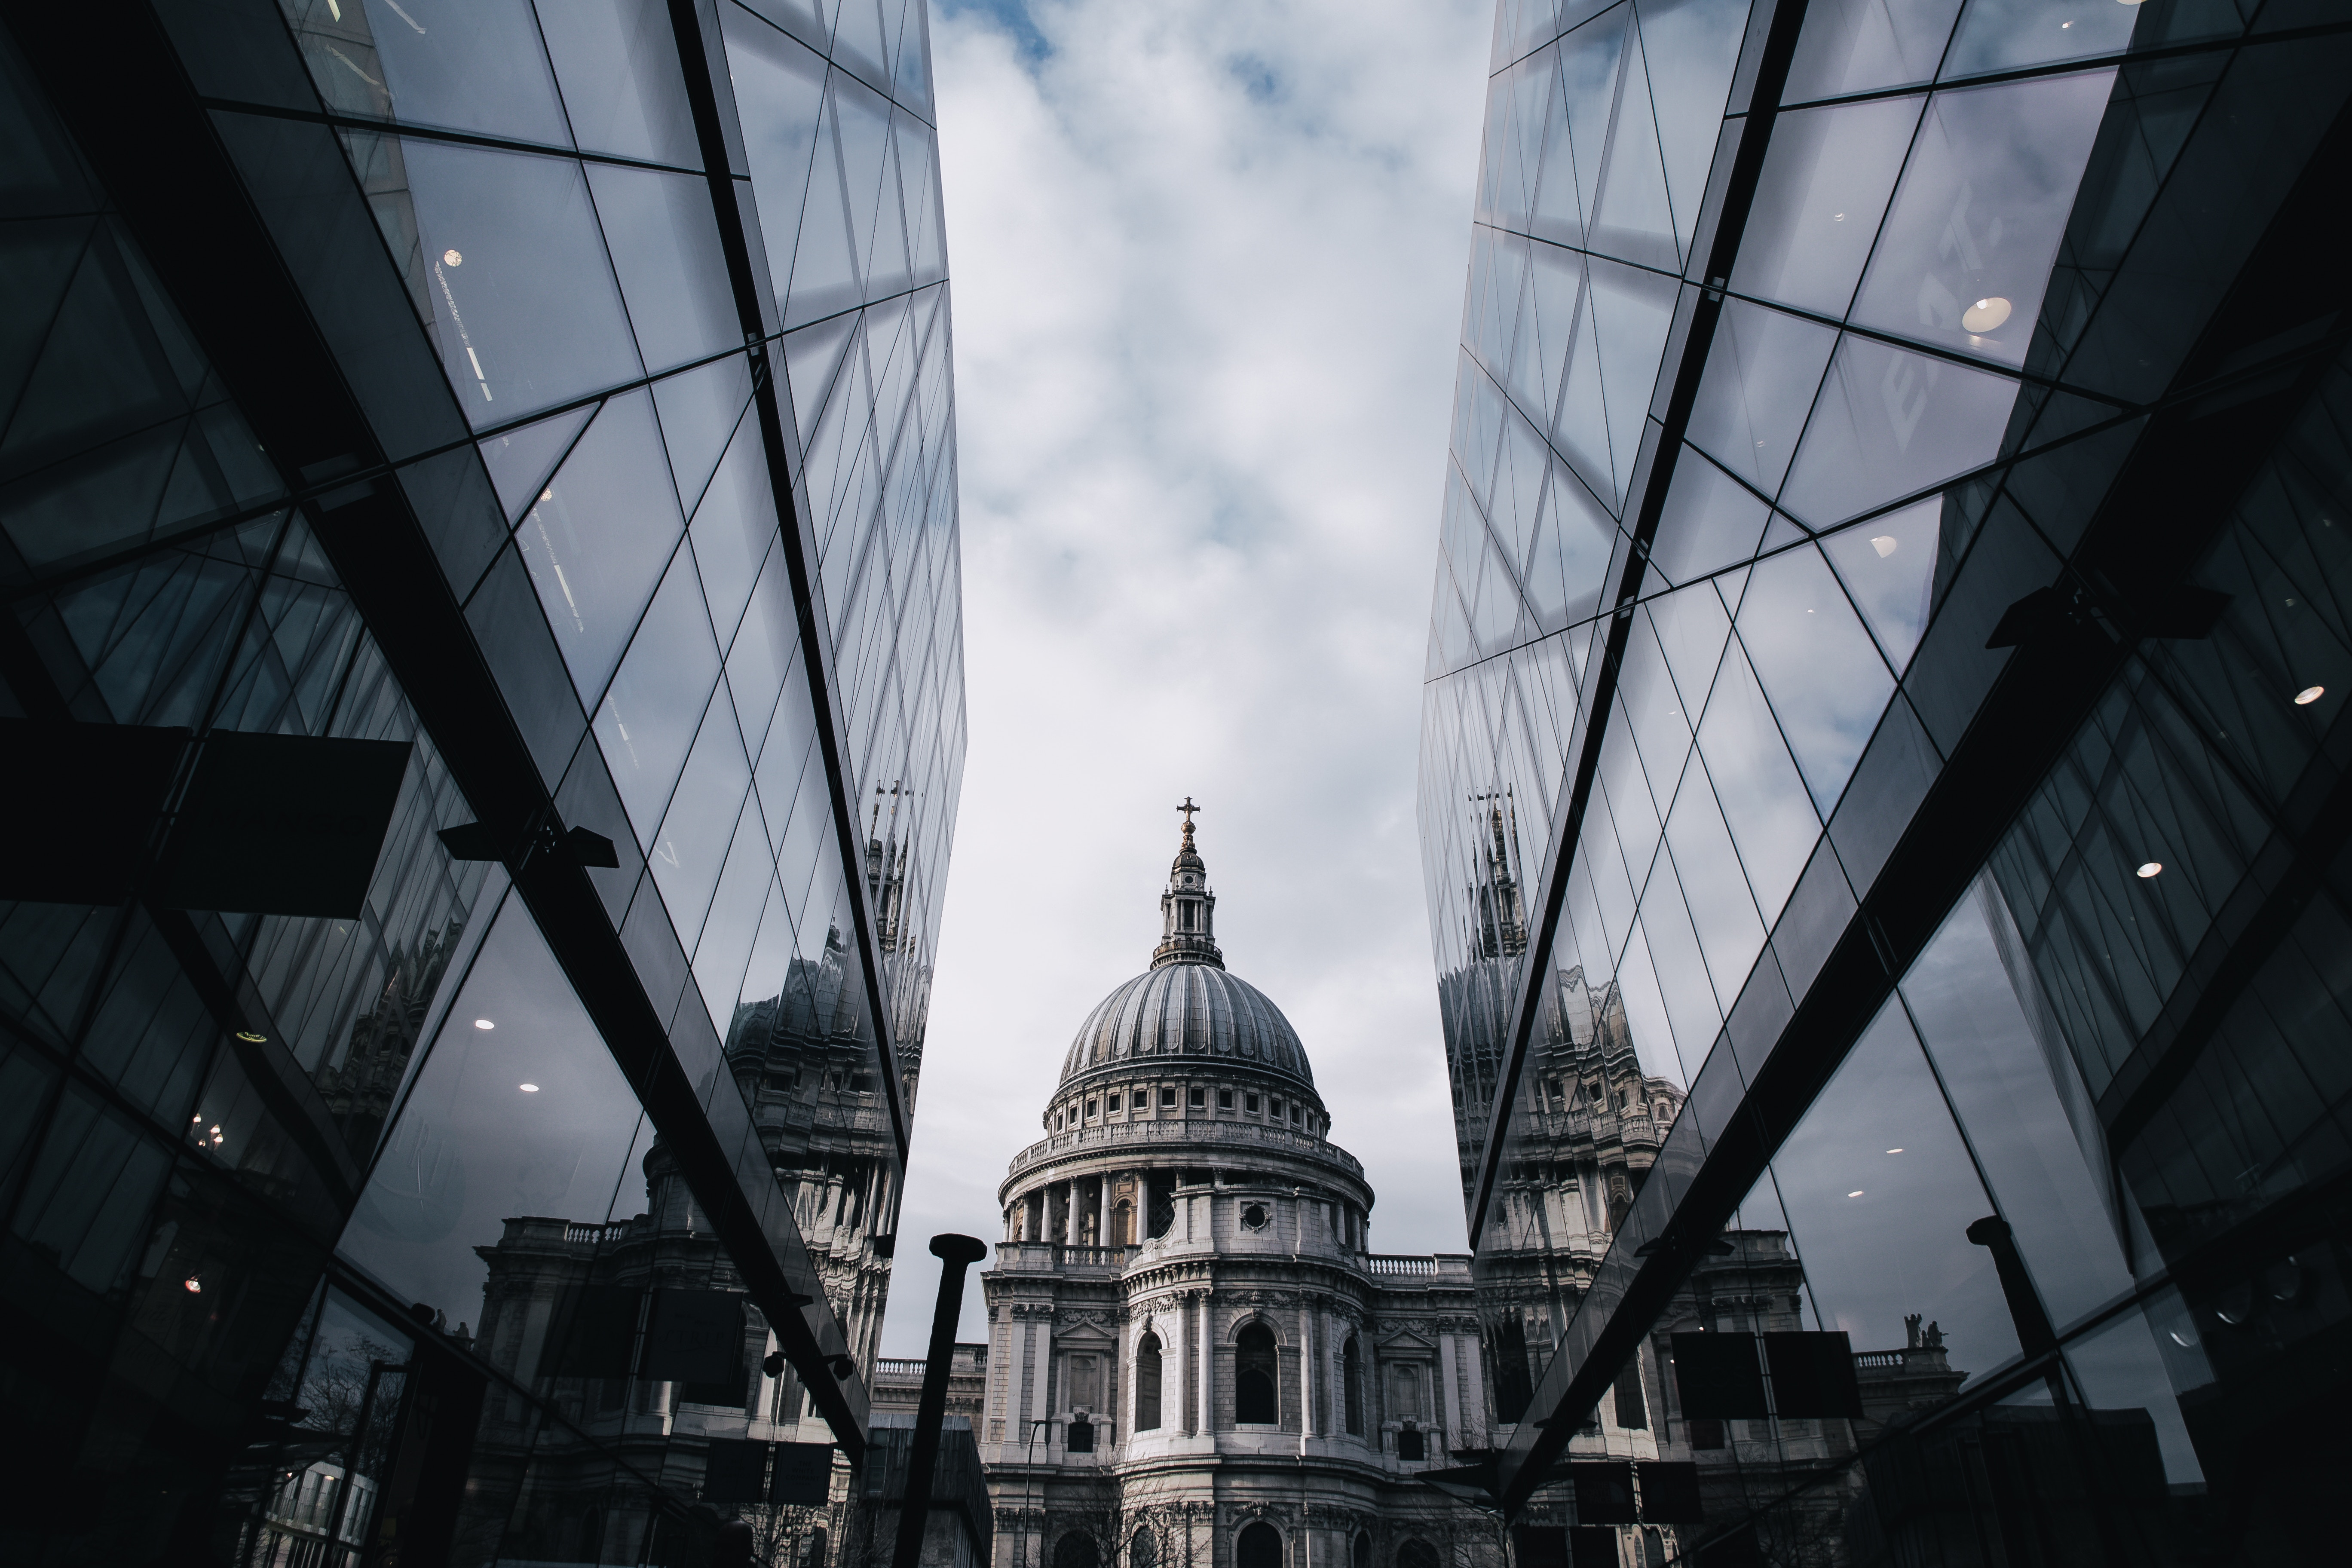 an image of st paul's cathedral